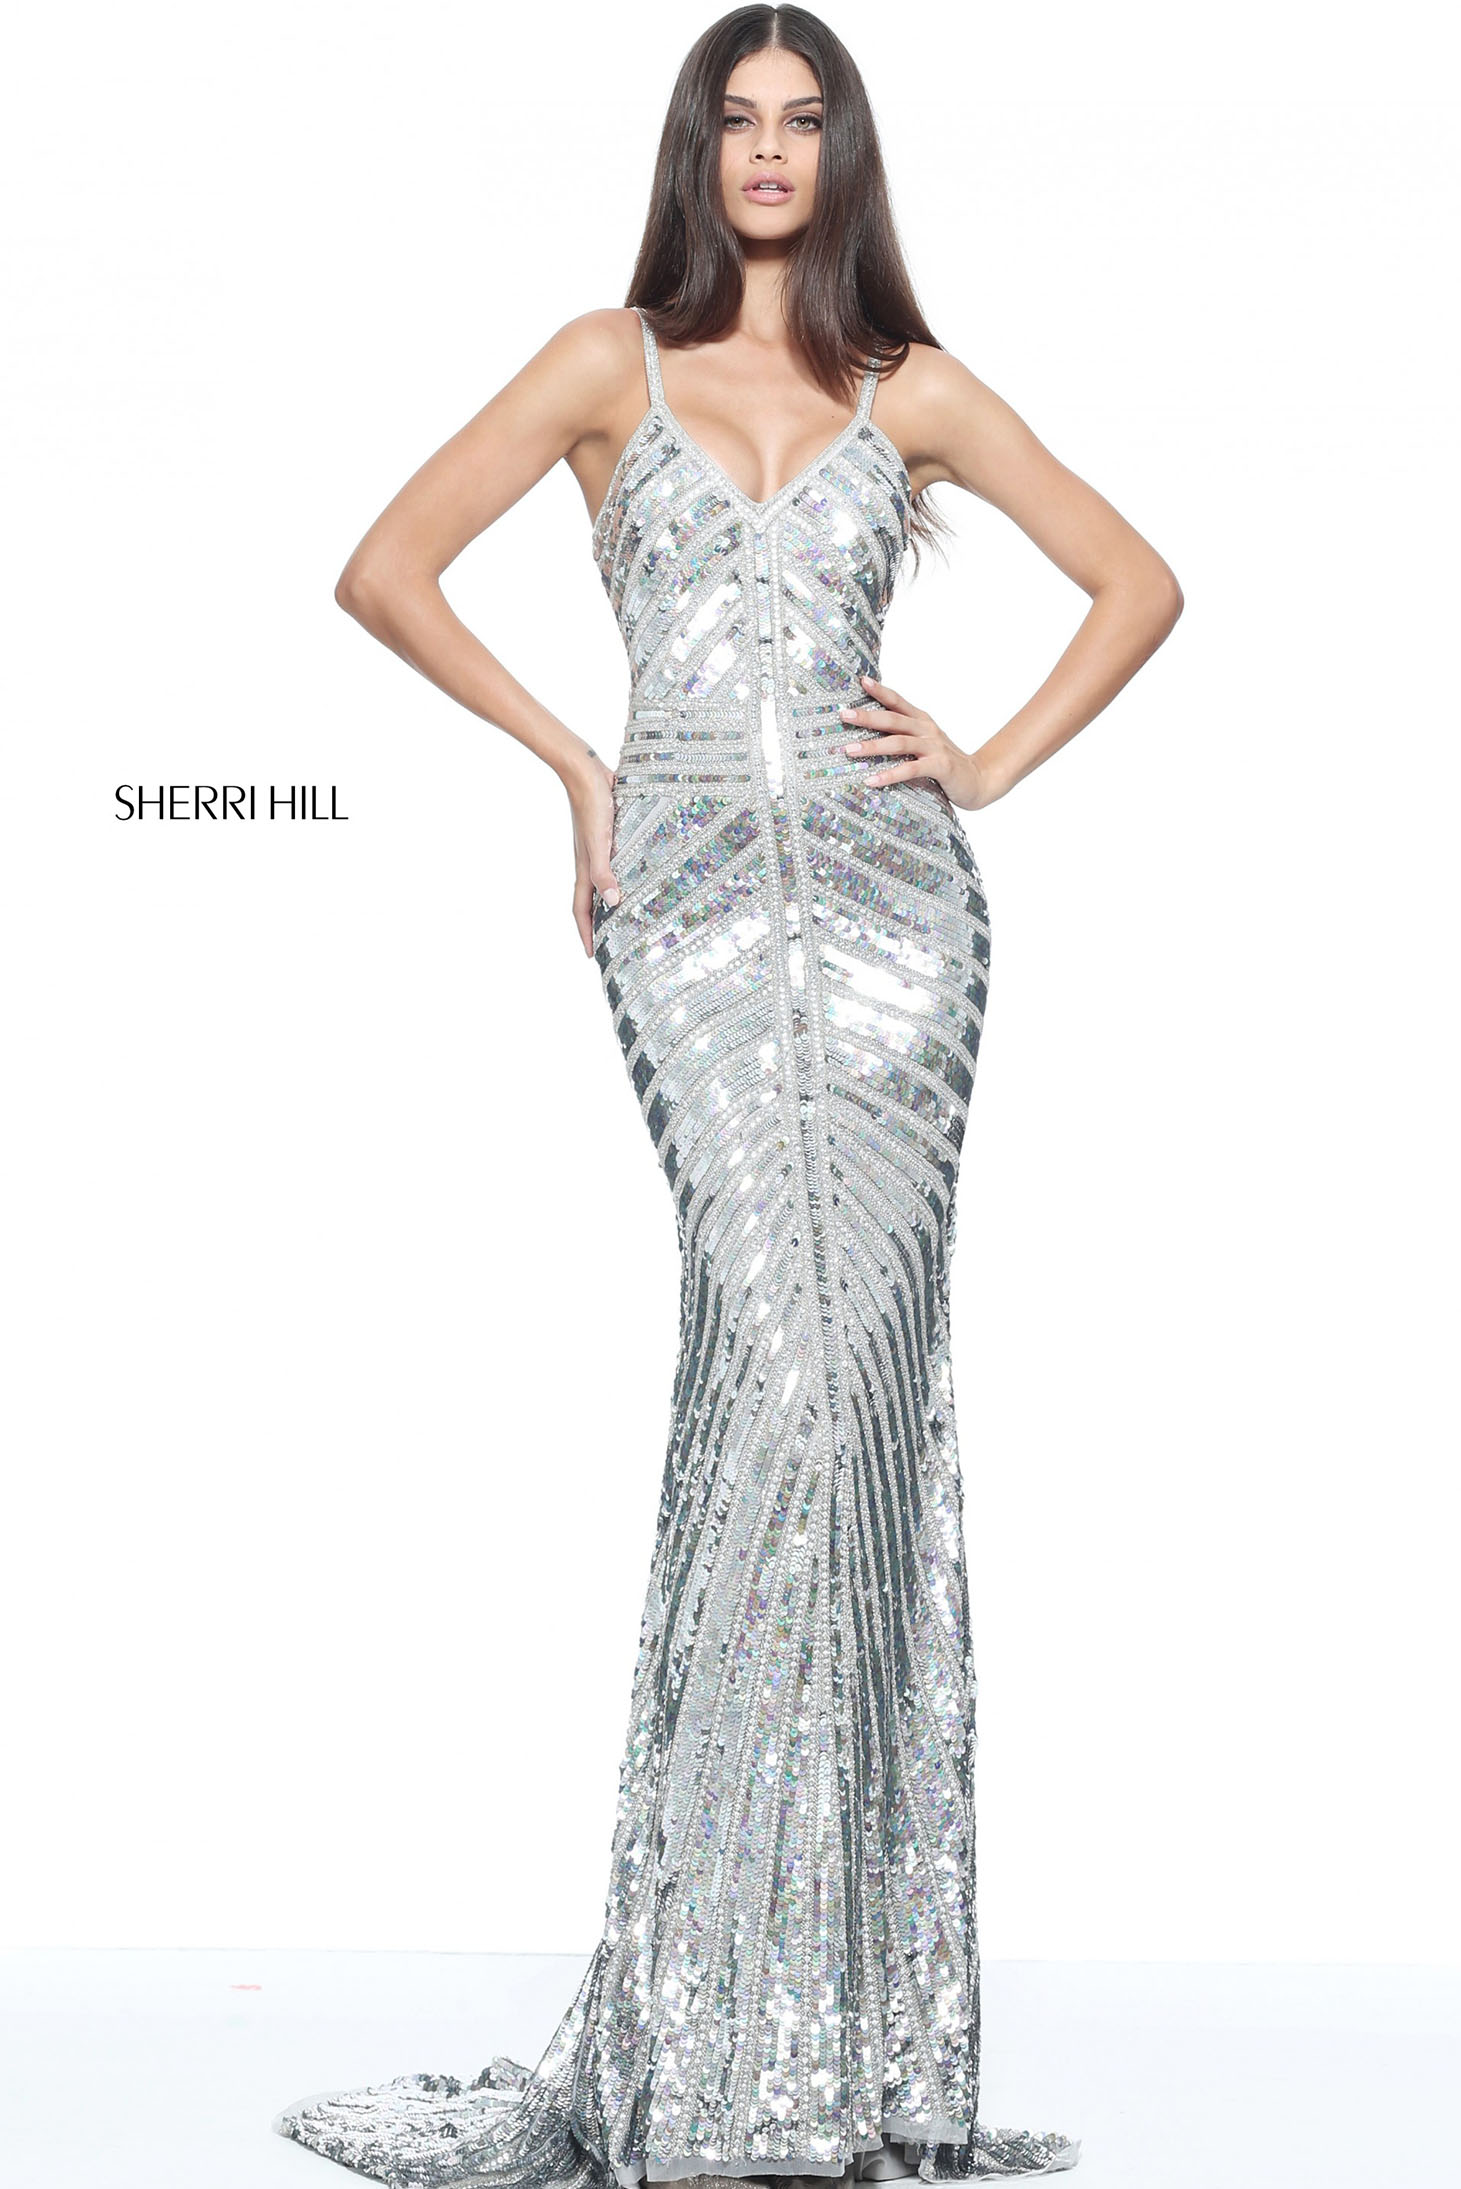 sherri hill silver dress